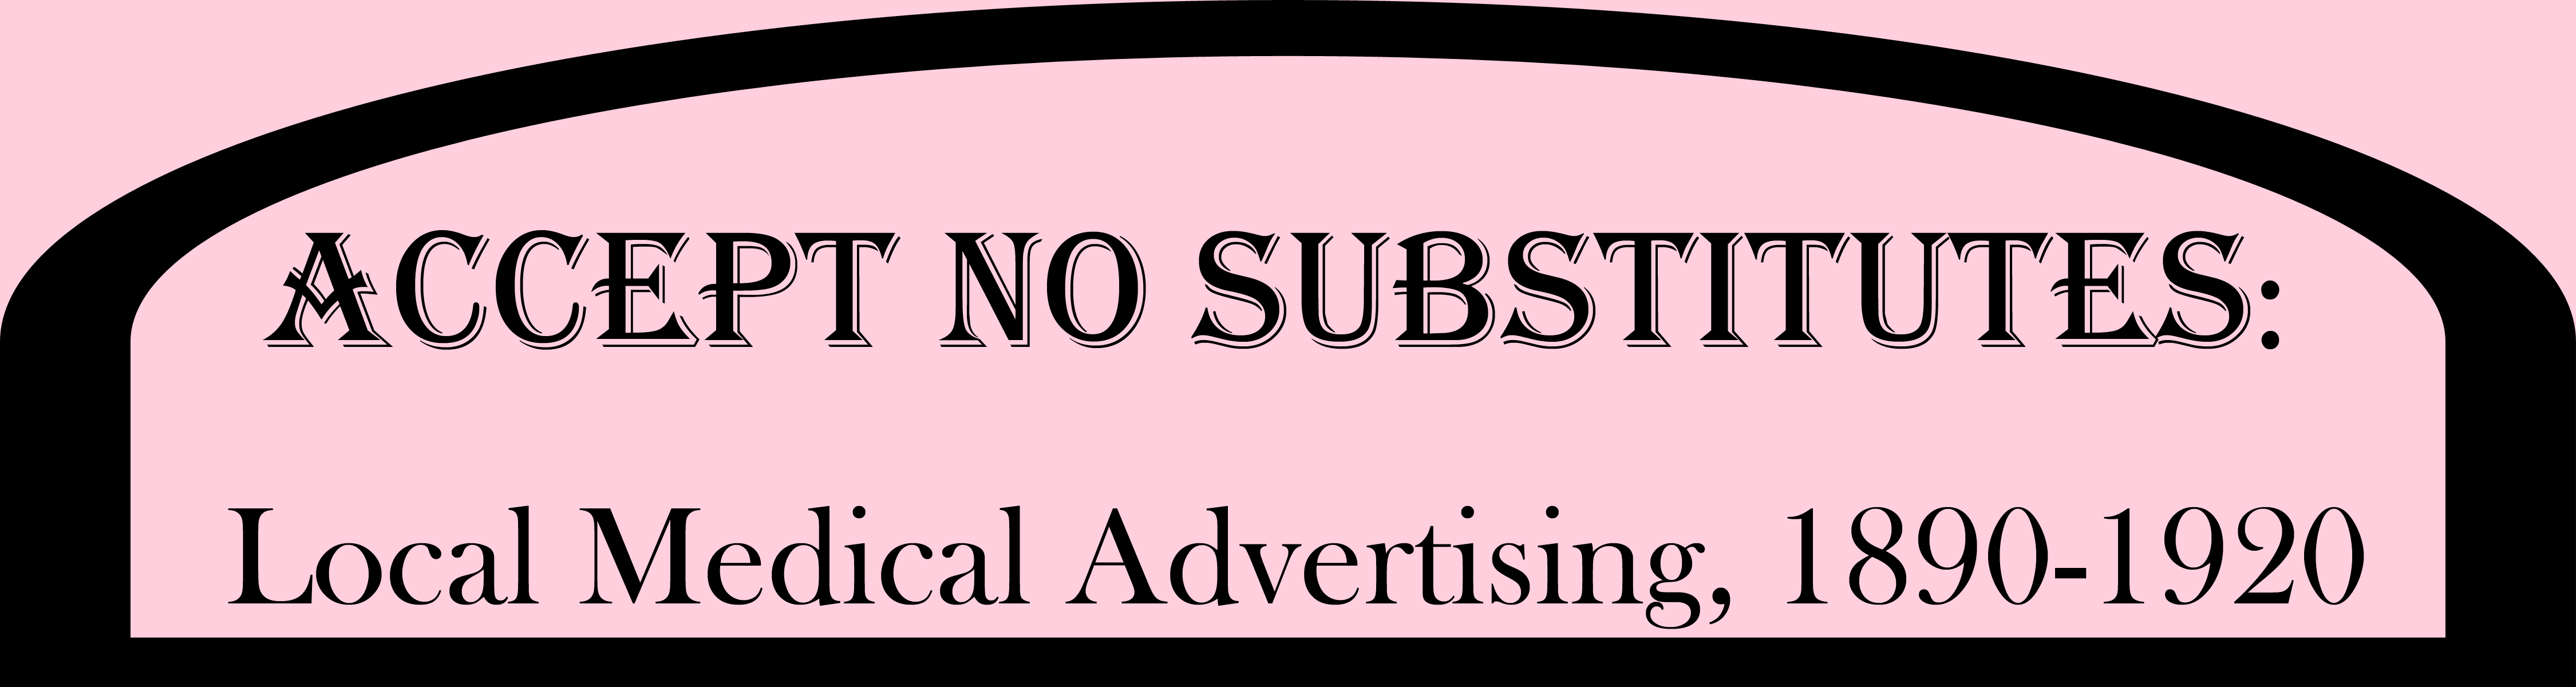 Accept No Substitutes: Local Medical Advertising, 1890-1920